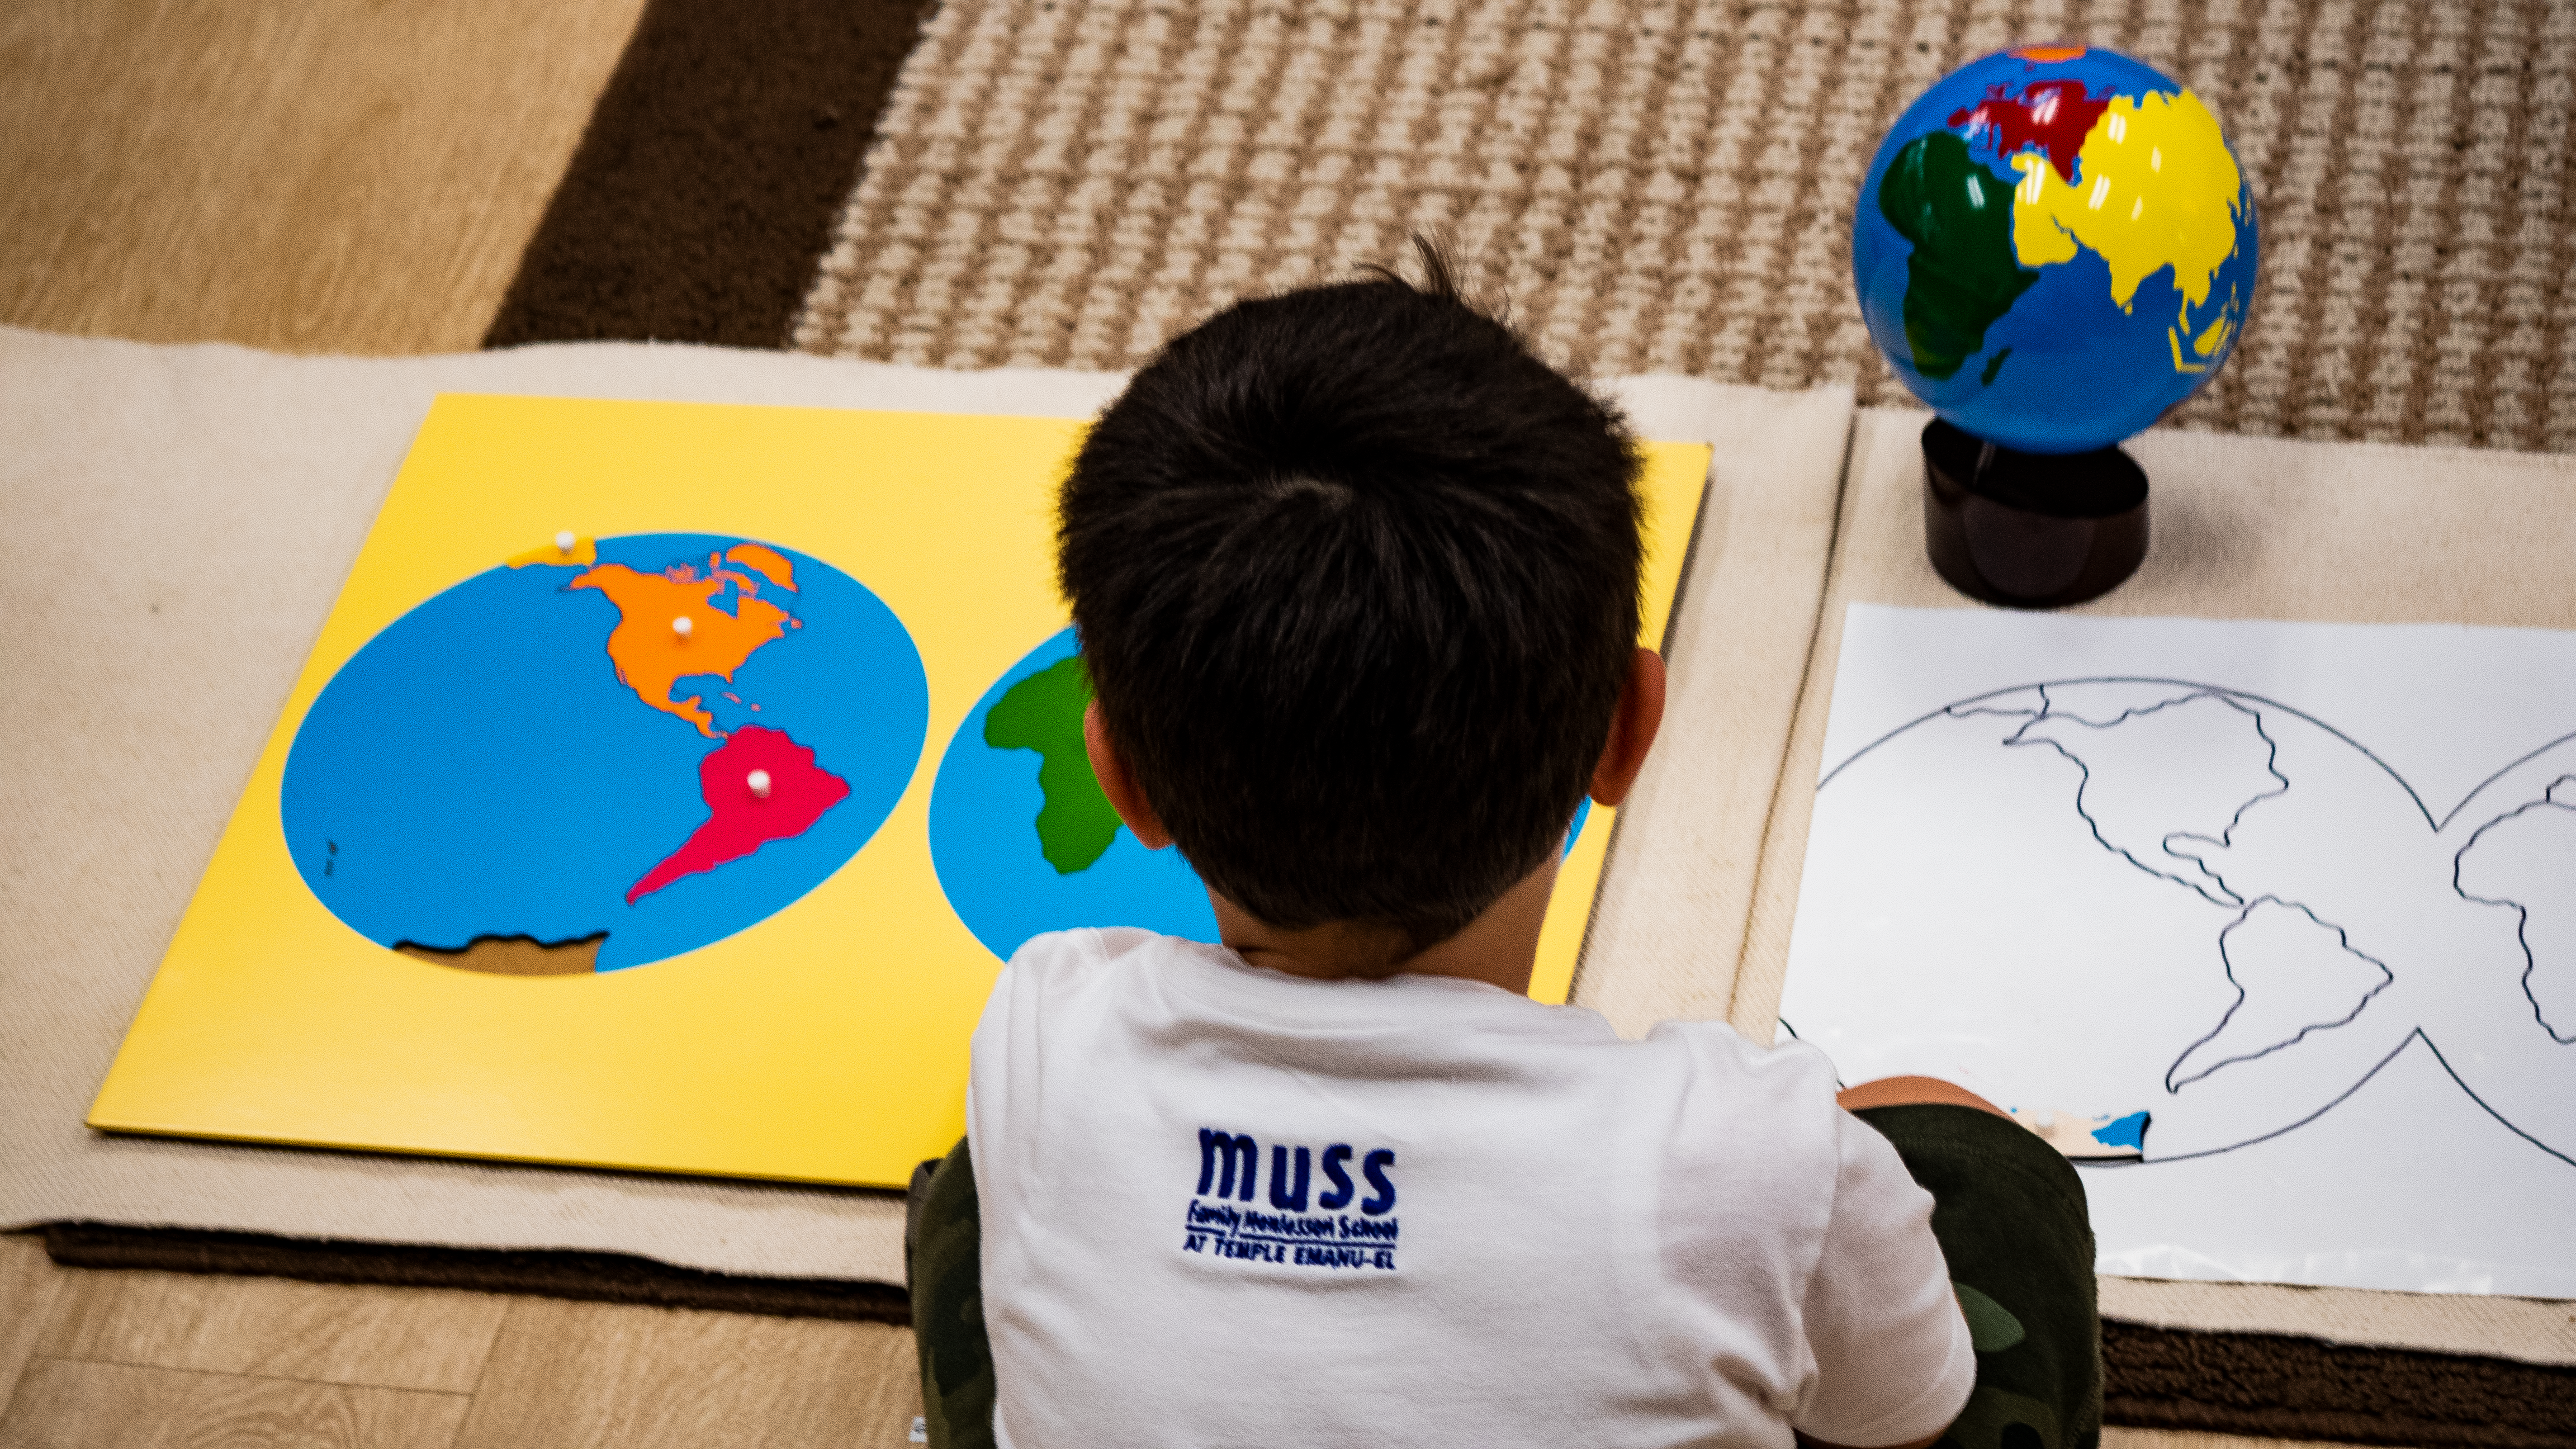 montessori student learns about the world map in a lesson at Muss Montessori at Temple Emanu-El